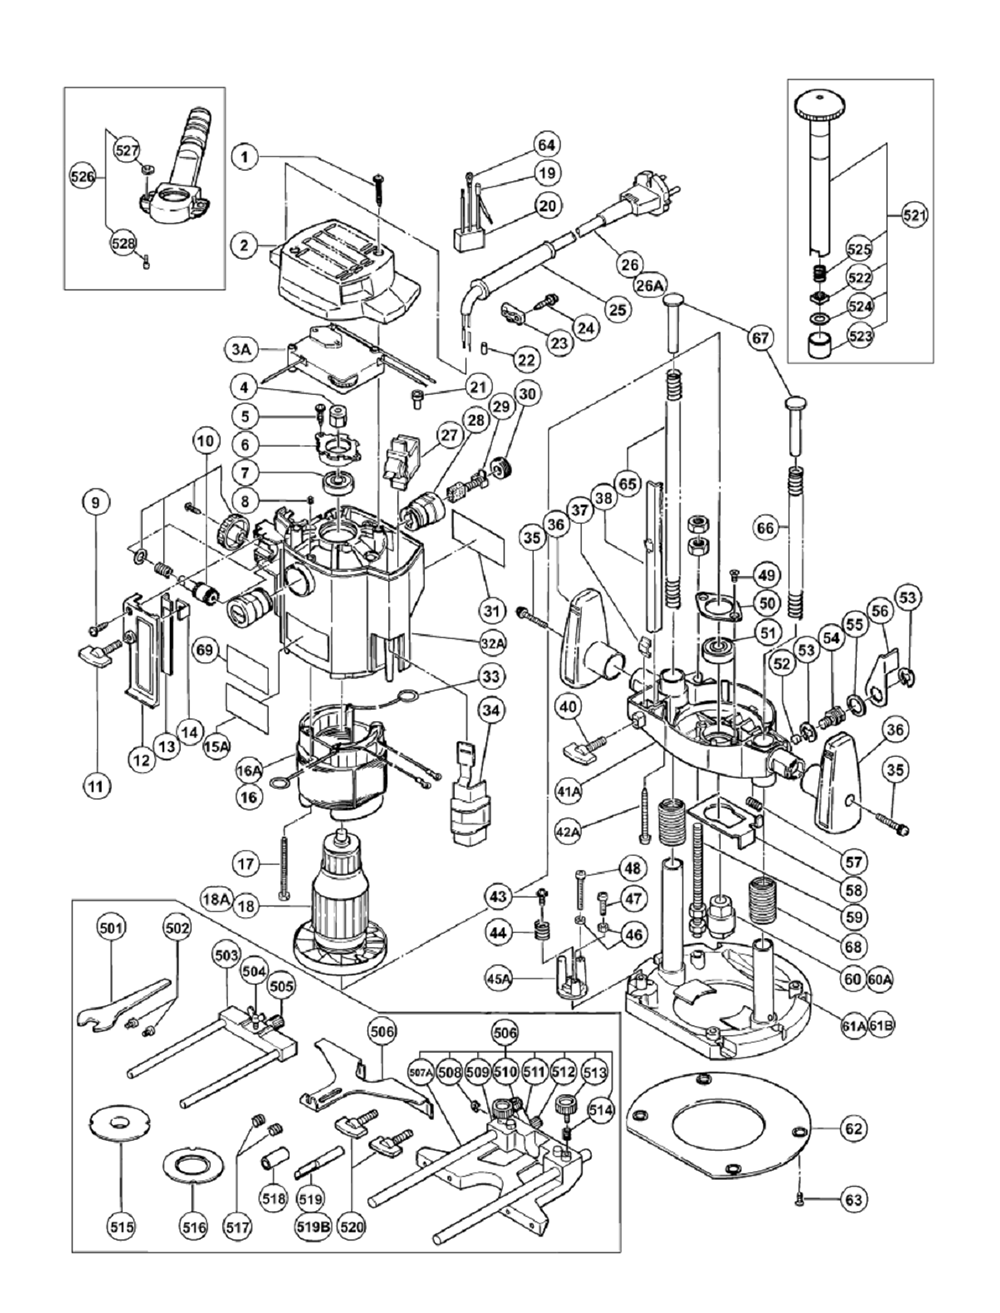 Hitachi M12v Parts List